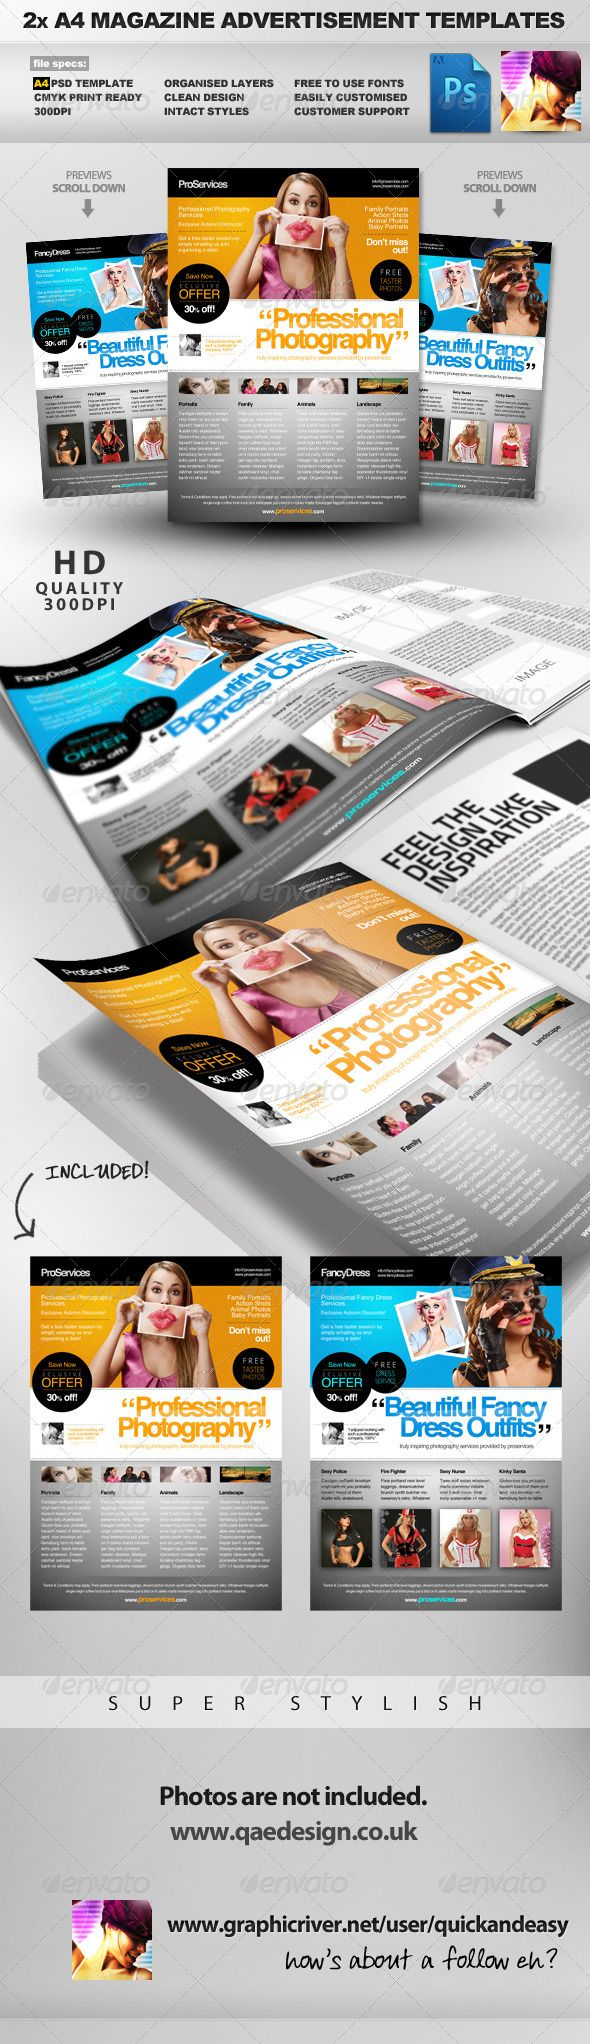 Pro Services - 2 A4 Magazine Ad Templates | Advertisement template ...